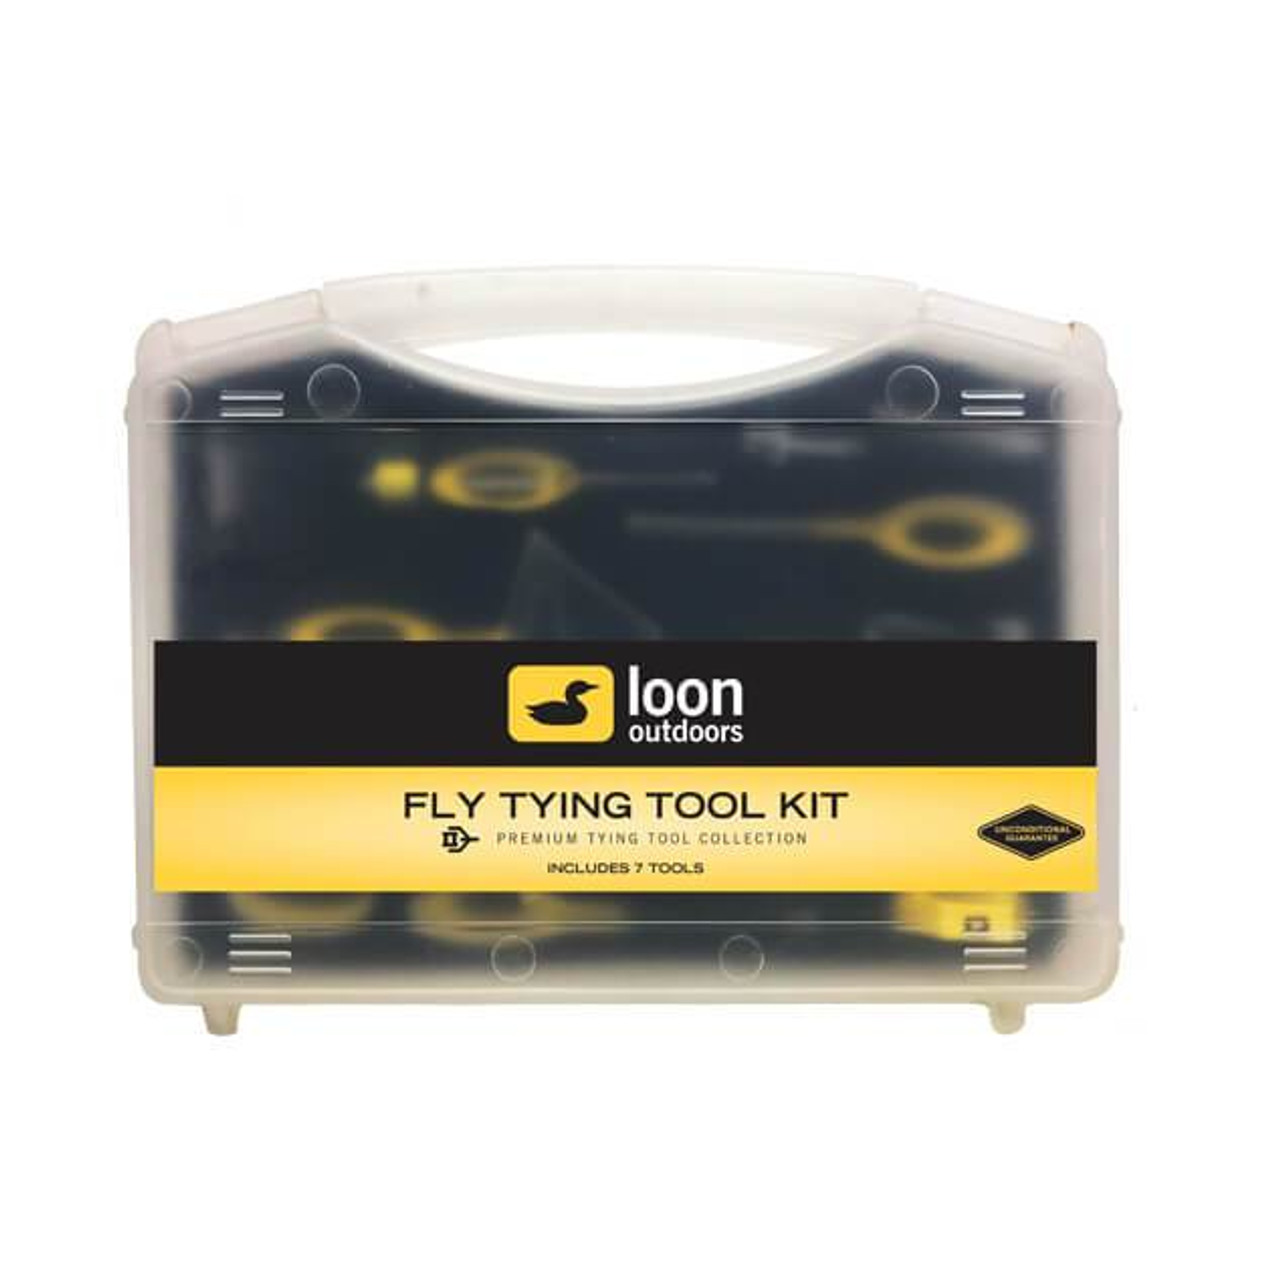 Loon Outdoors Fly Tying Tool Kit